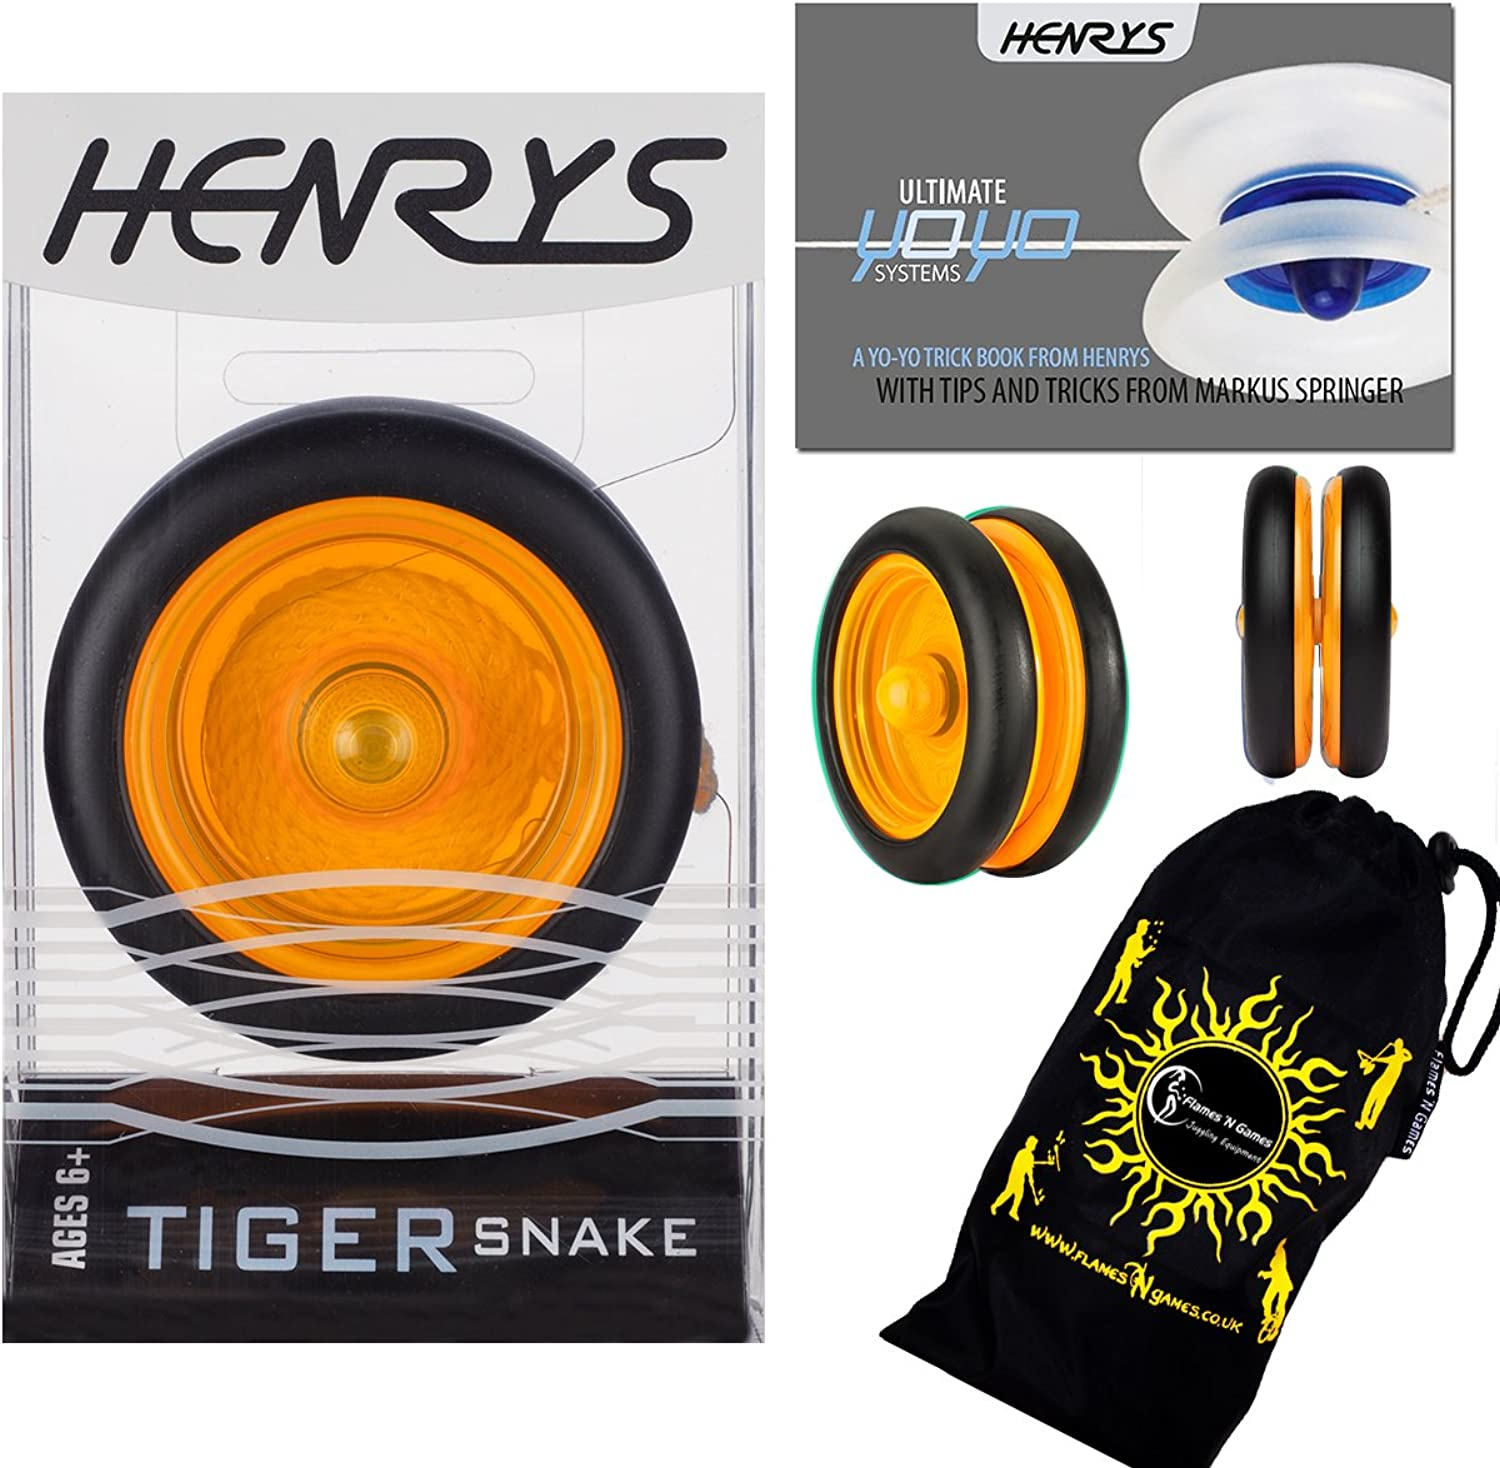 Henrys Tiger Snake YoYo (orange) Professional Looping Trick (2A) Bearing YoYo with AXYS System +Instructional Booklet of Tricks & Travel Bag  Pro YoYos for Kids and Adults.